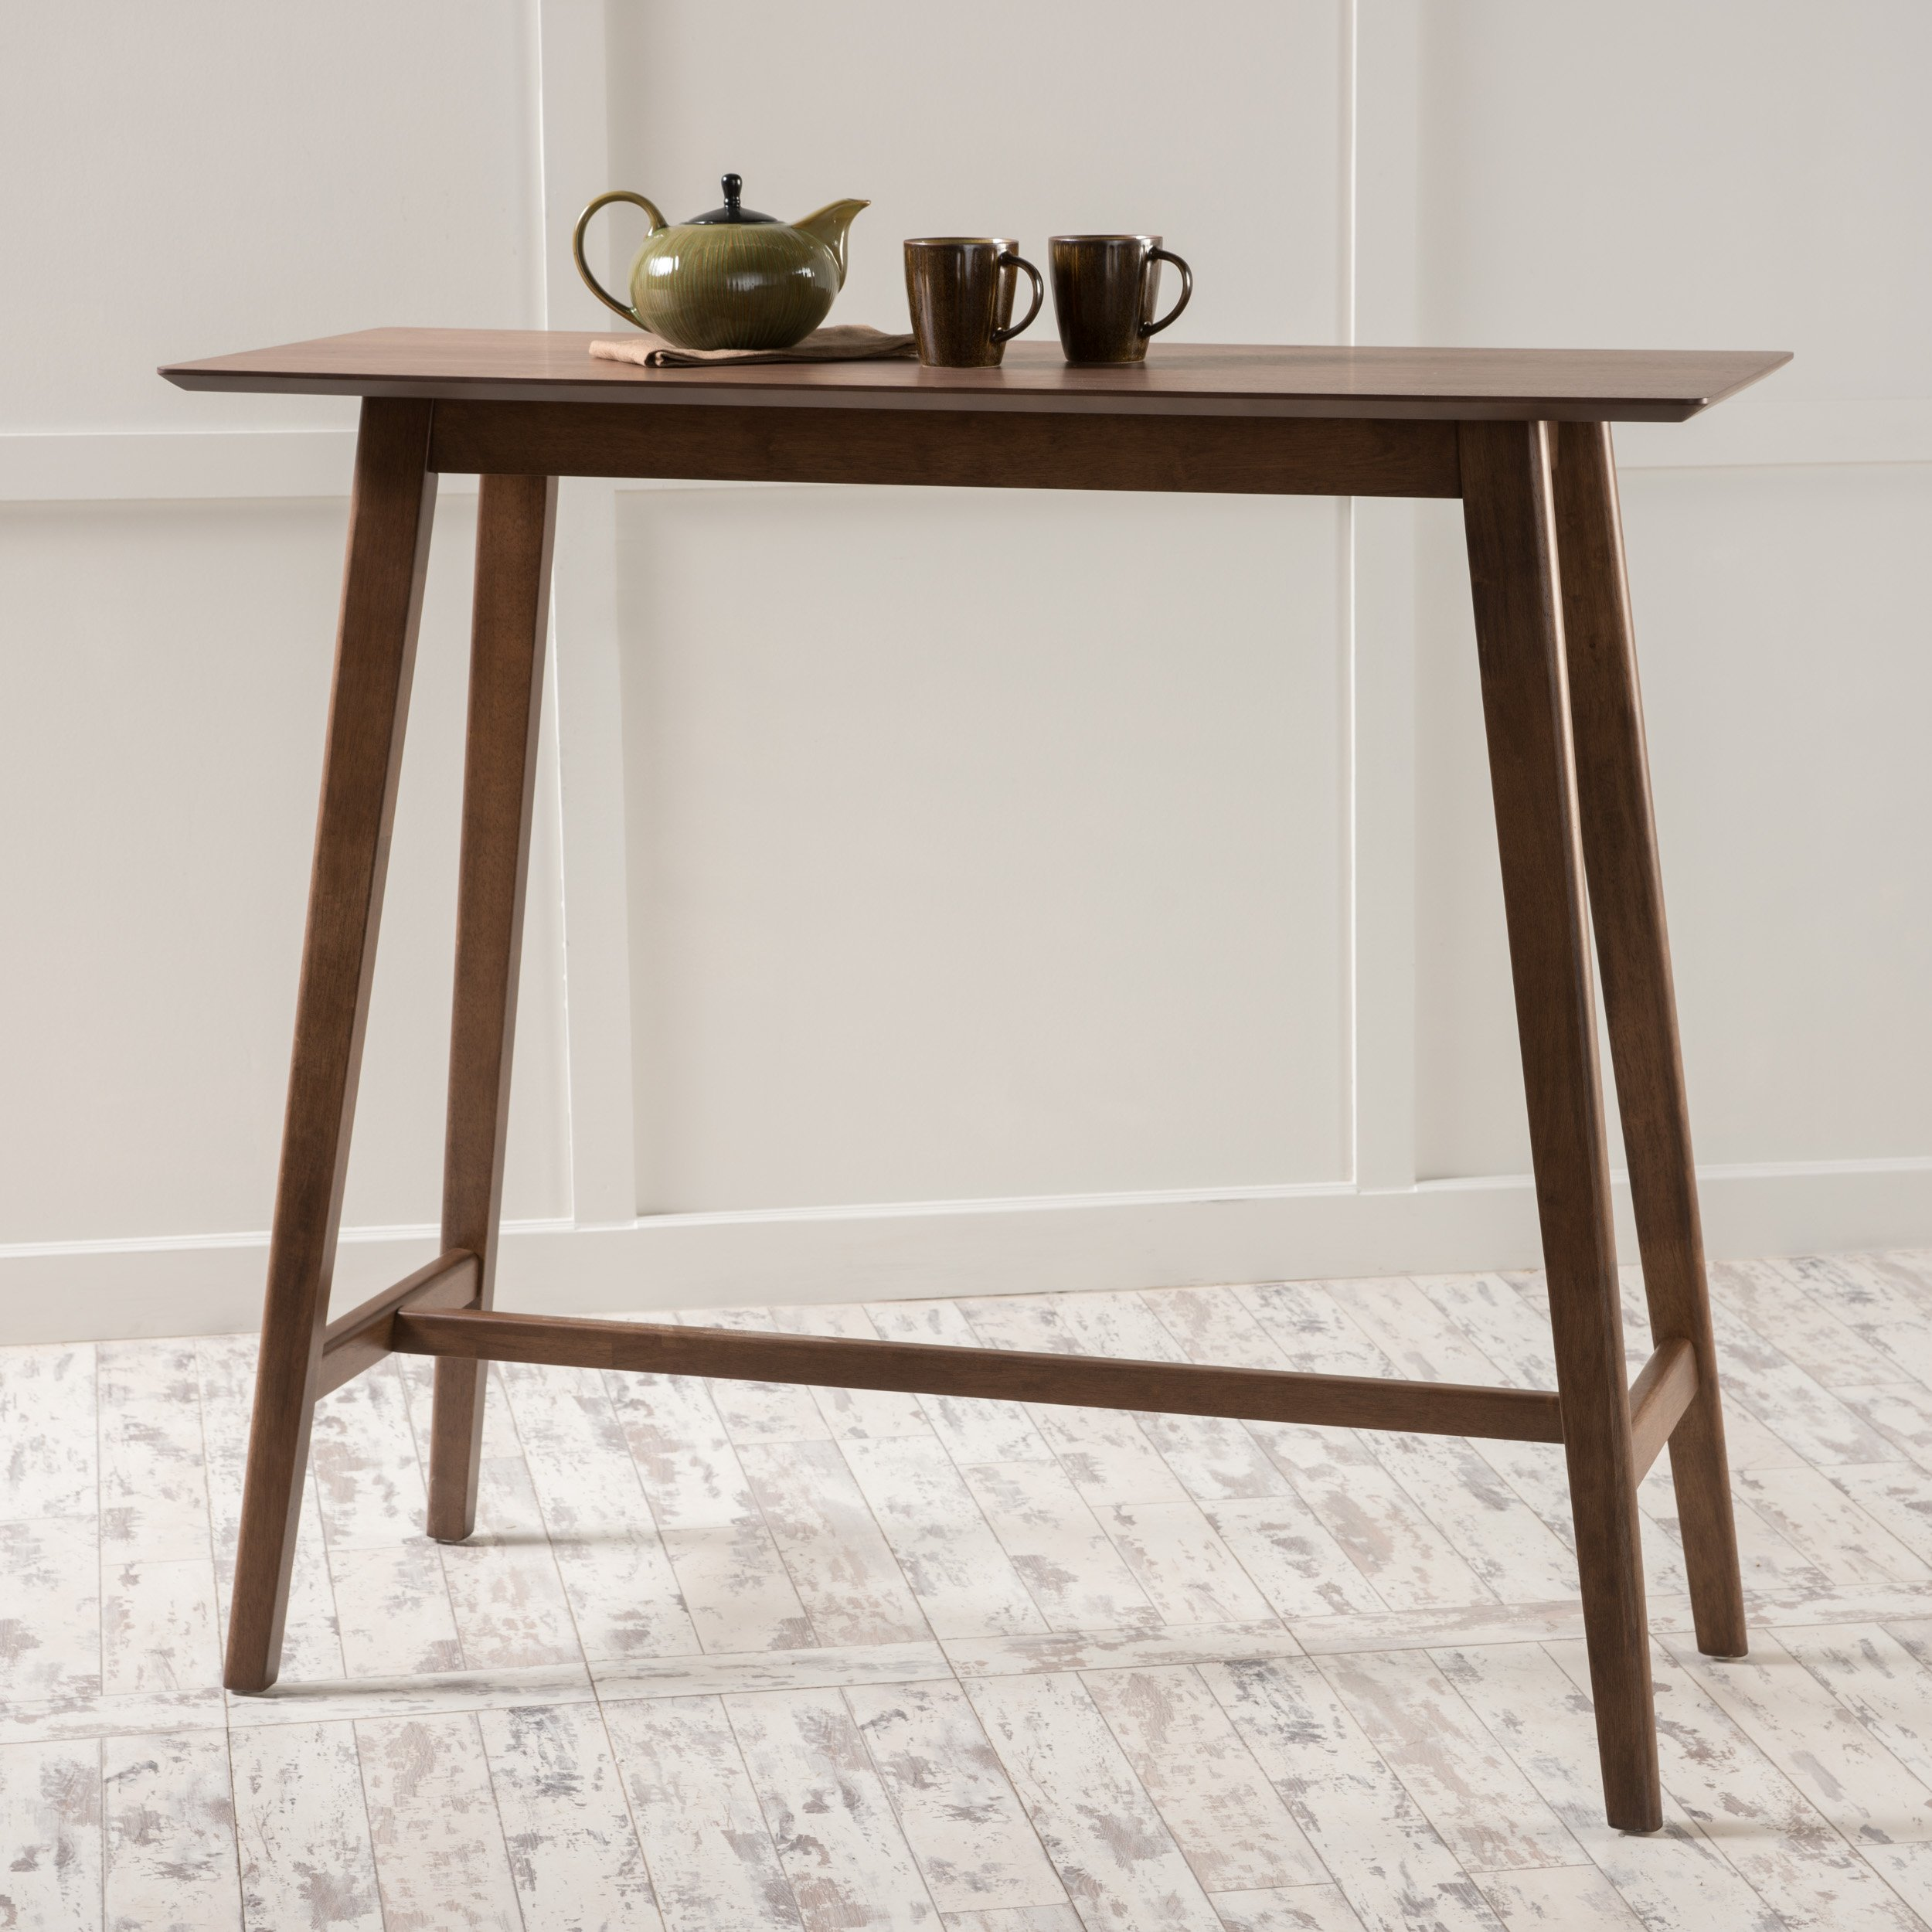 Christopher Knight Home 298973 Moria Bar Table, Natural Walnut by Christopher Knight Home